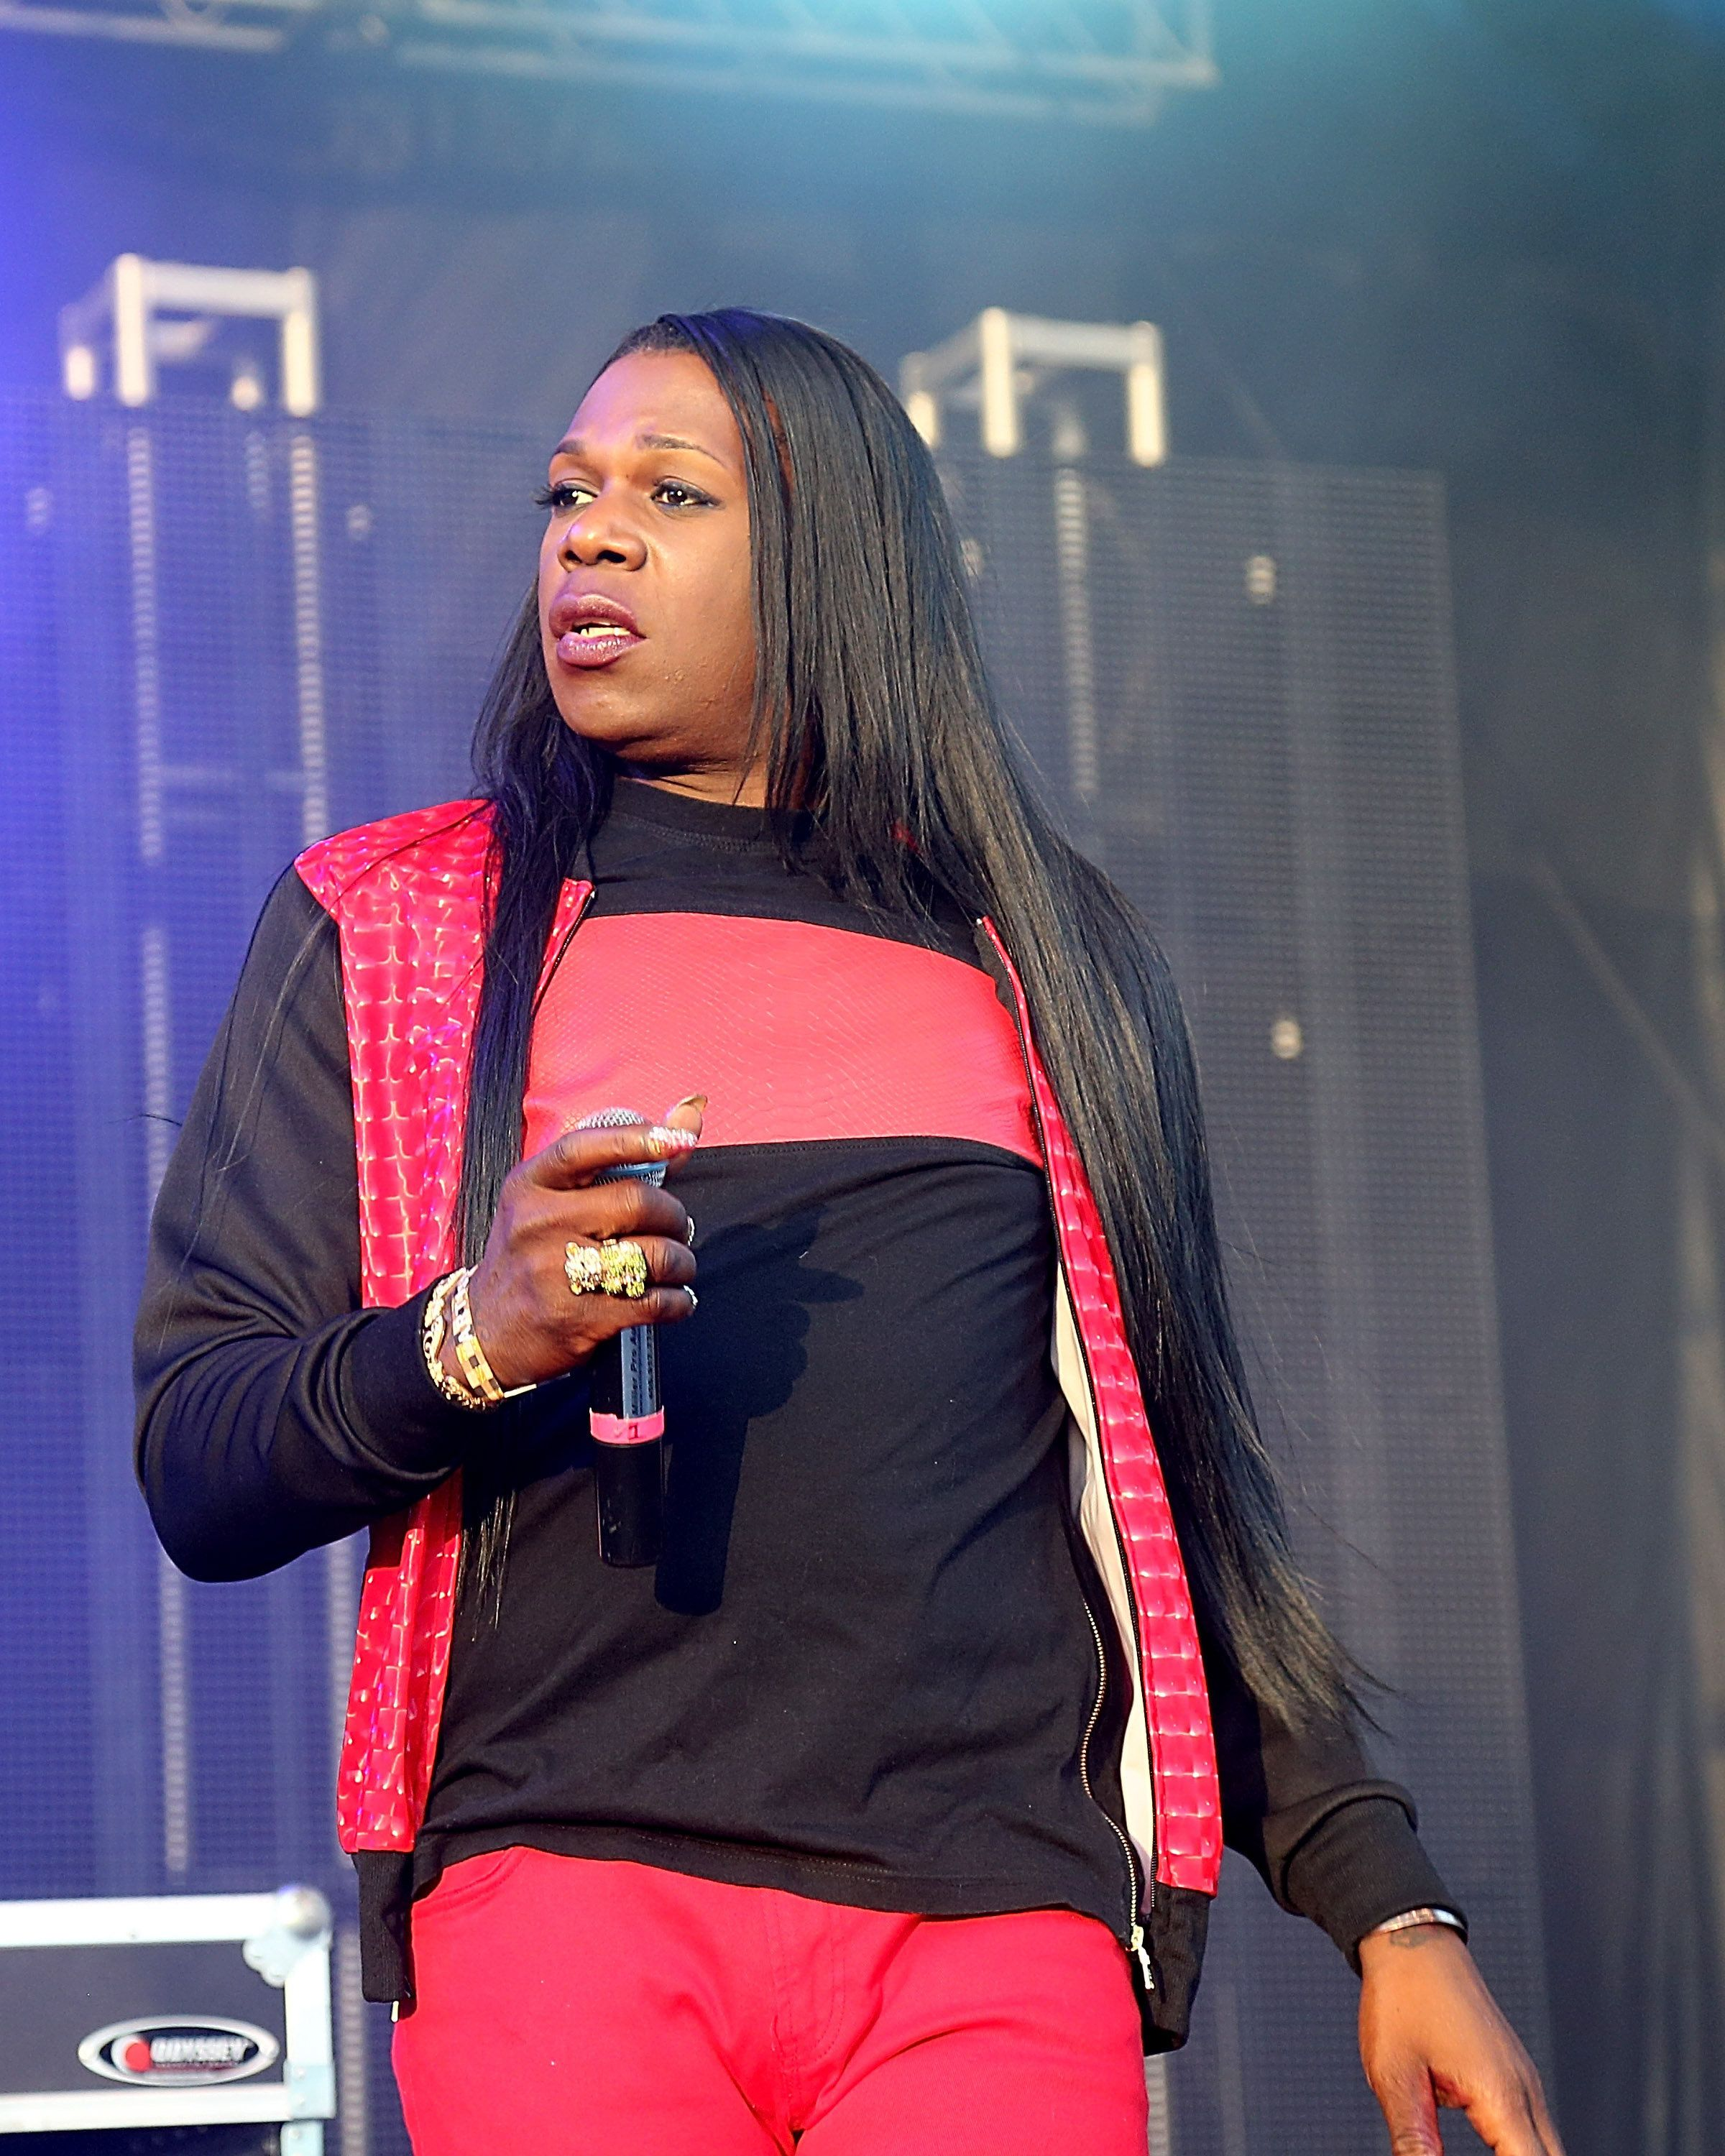 AUSTIN, TX - NOVEMBER 08:  Big Freedia performs in concert during Day 3 of Fun Fun Fun Fest at Auditorium Shores on November 8, 2015 in Austin, Texas.  (Photo by Gary Miller/Getty Images)